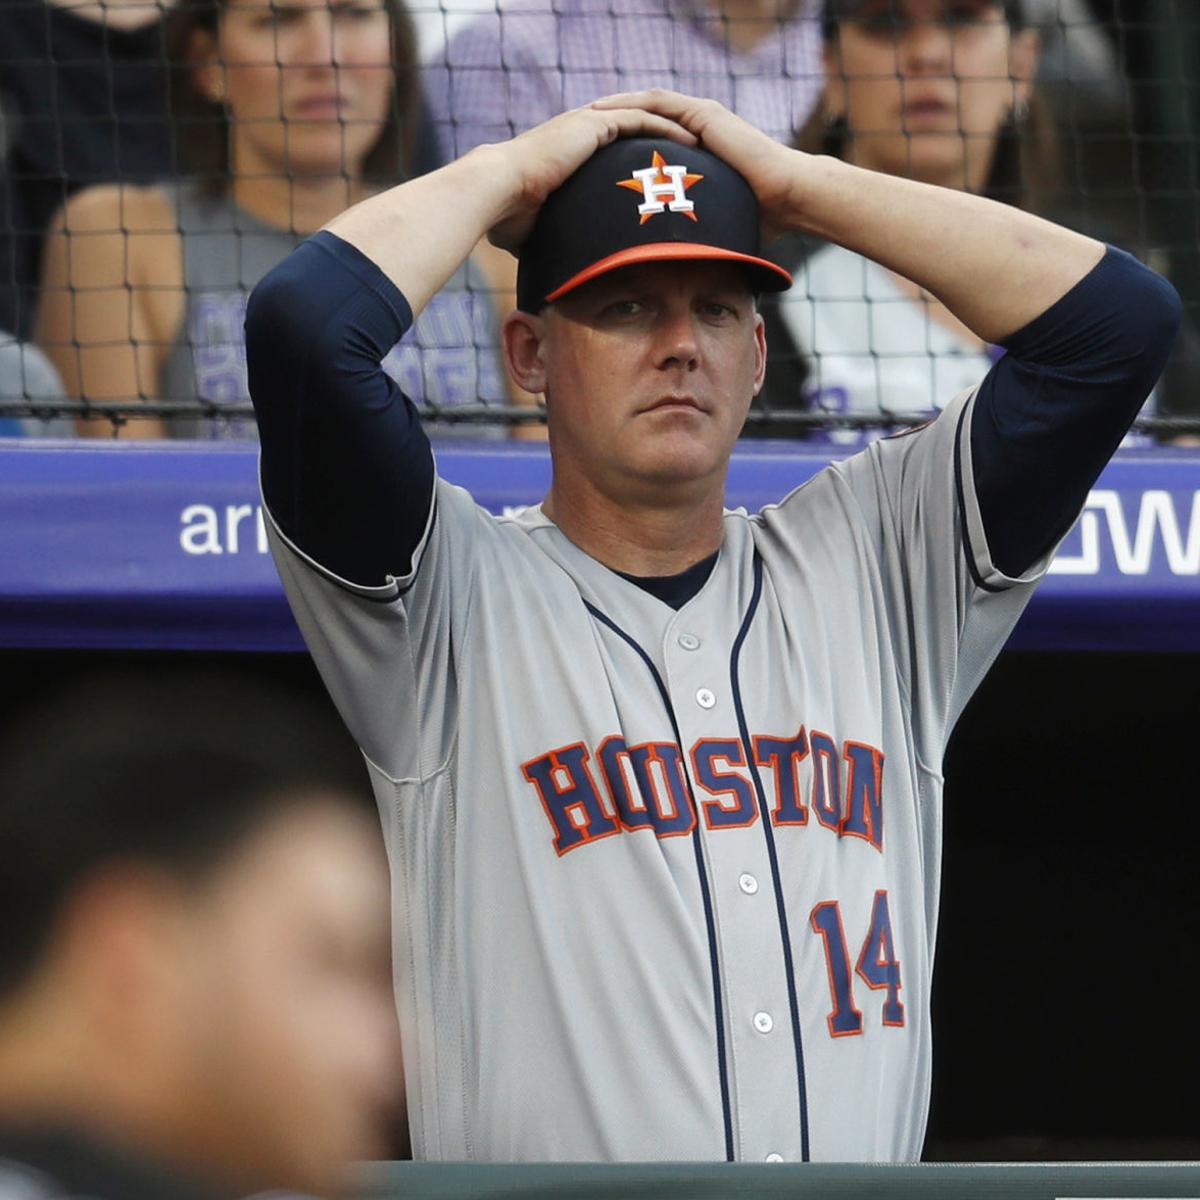 Hinch Luhnow Fired For Astros Sign Stealing Chippewa Com